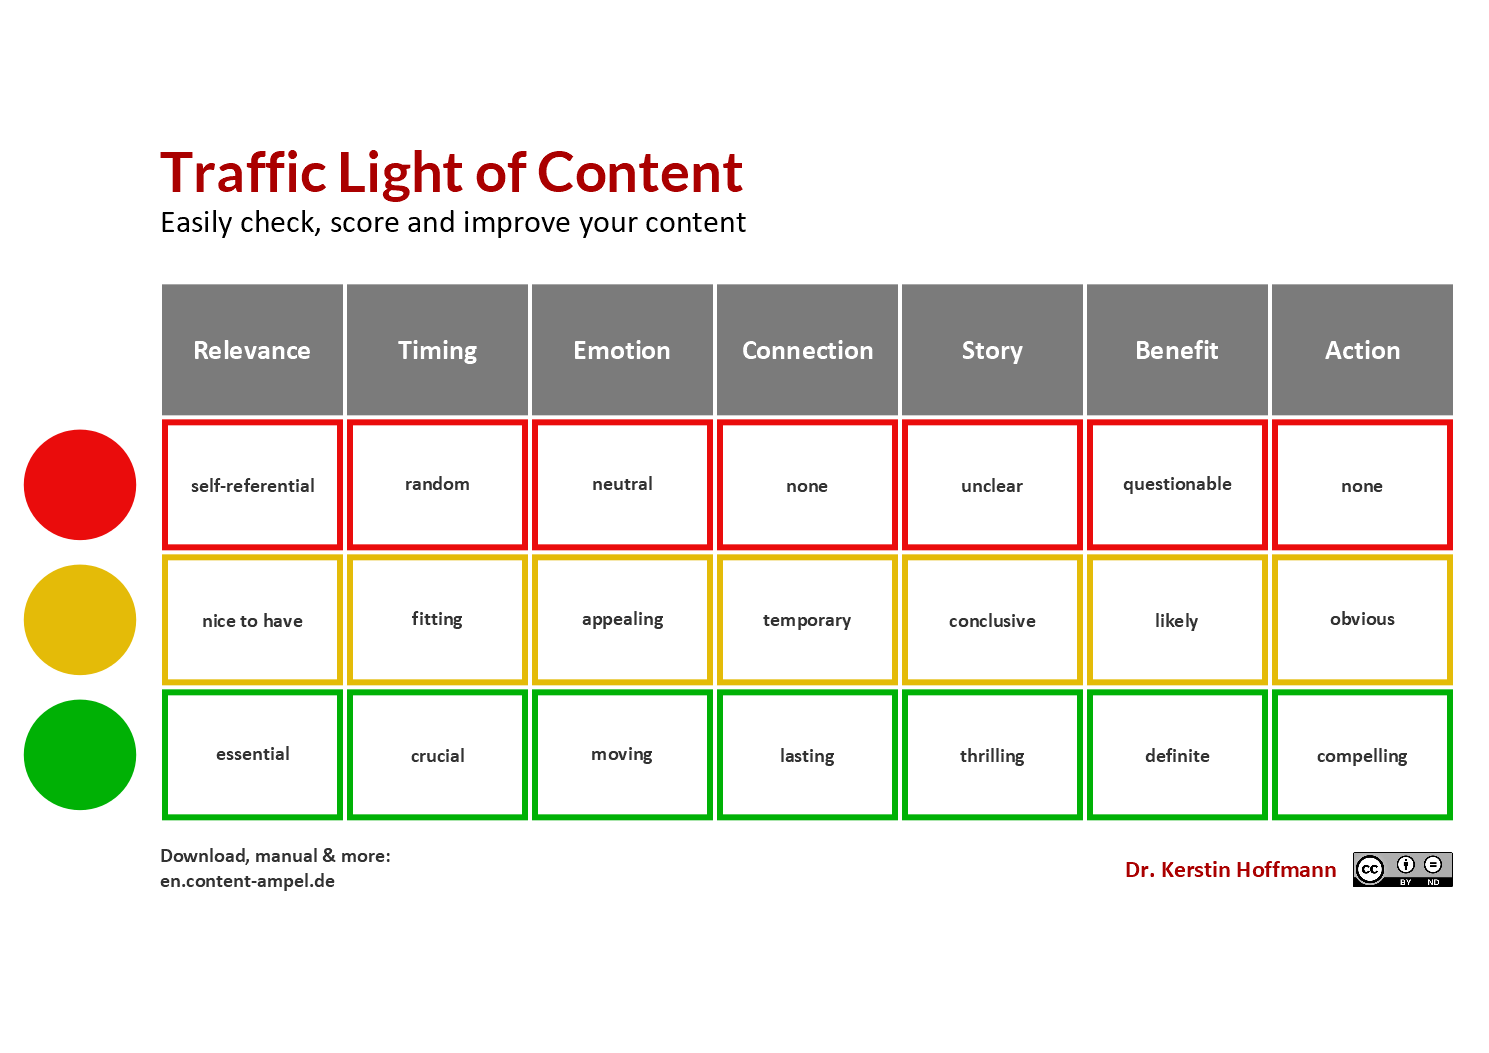 Traffic Light of Content